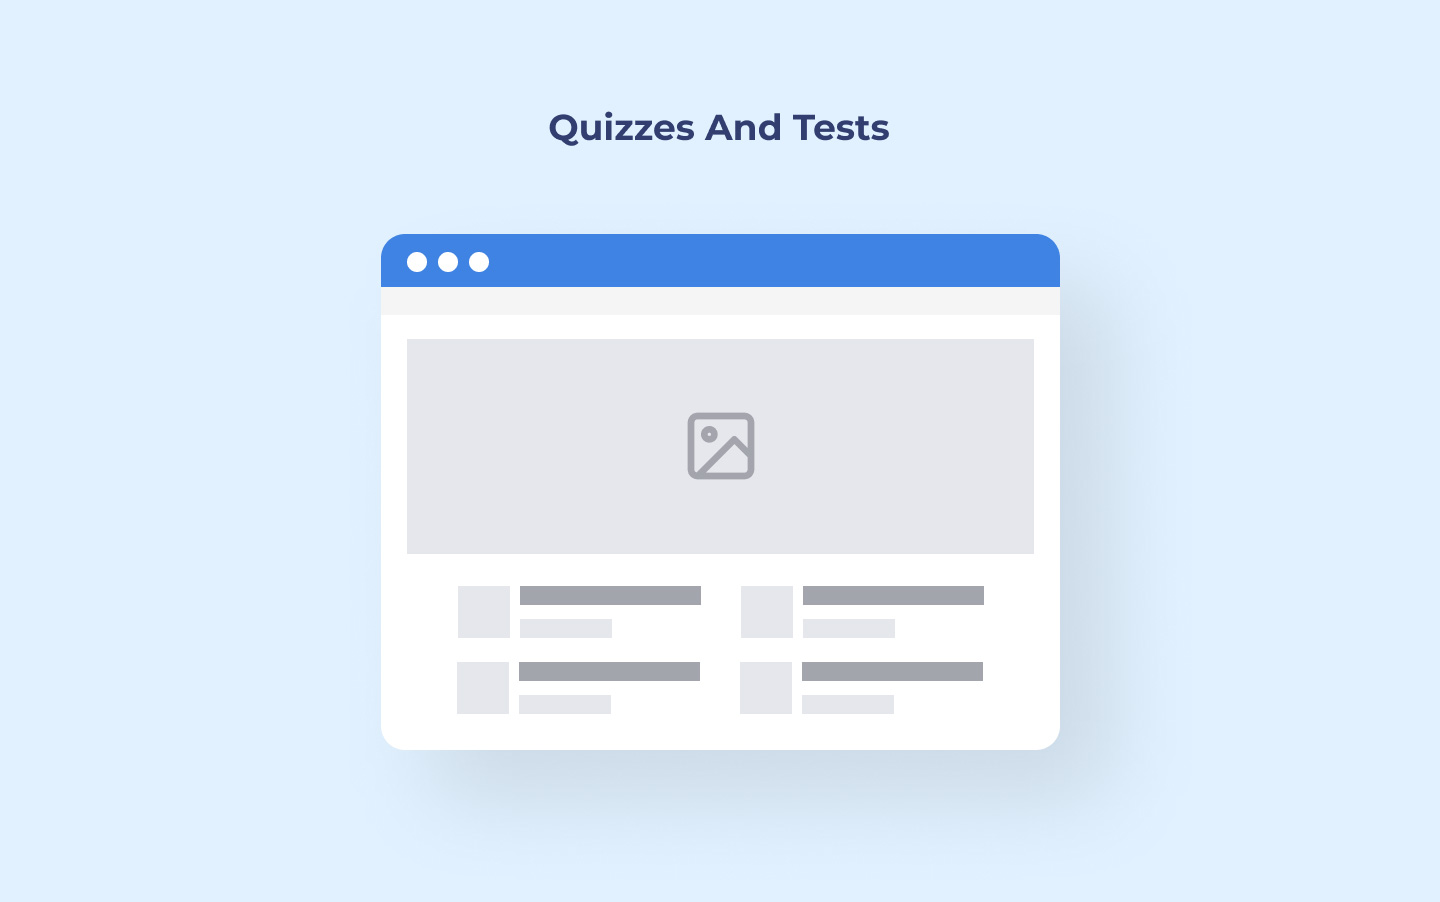 Quizzes and tests for LMS